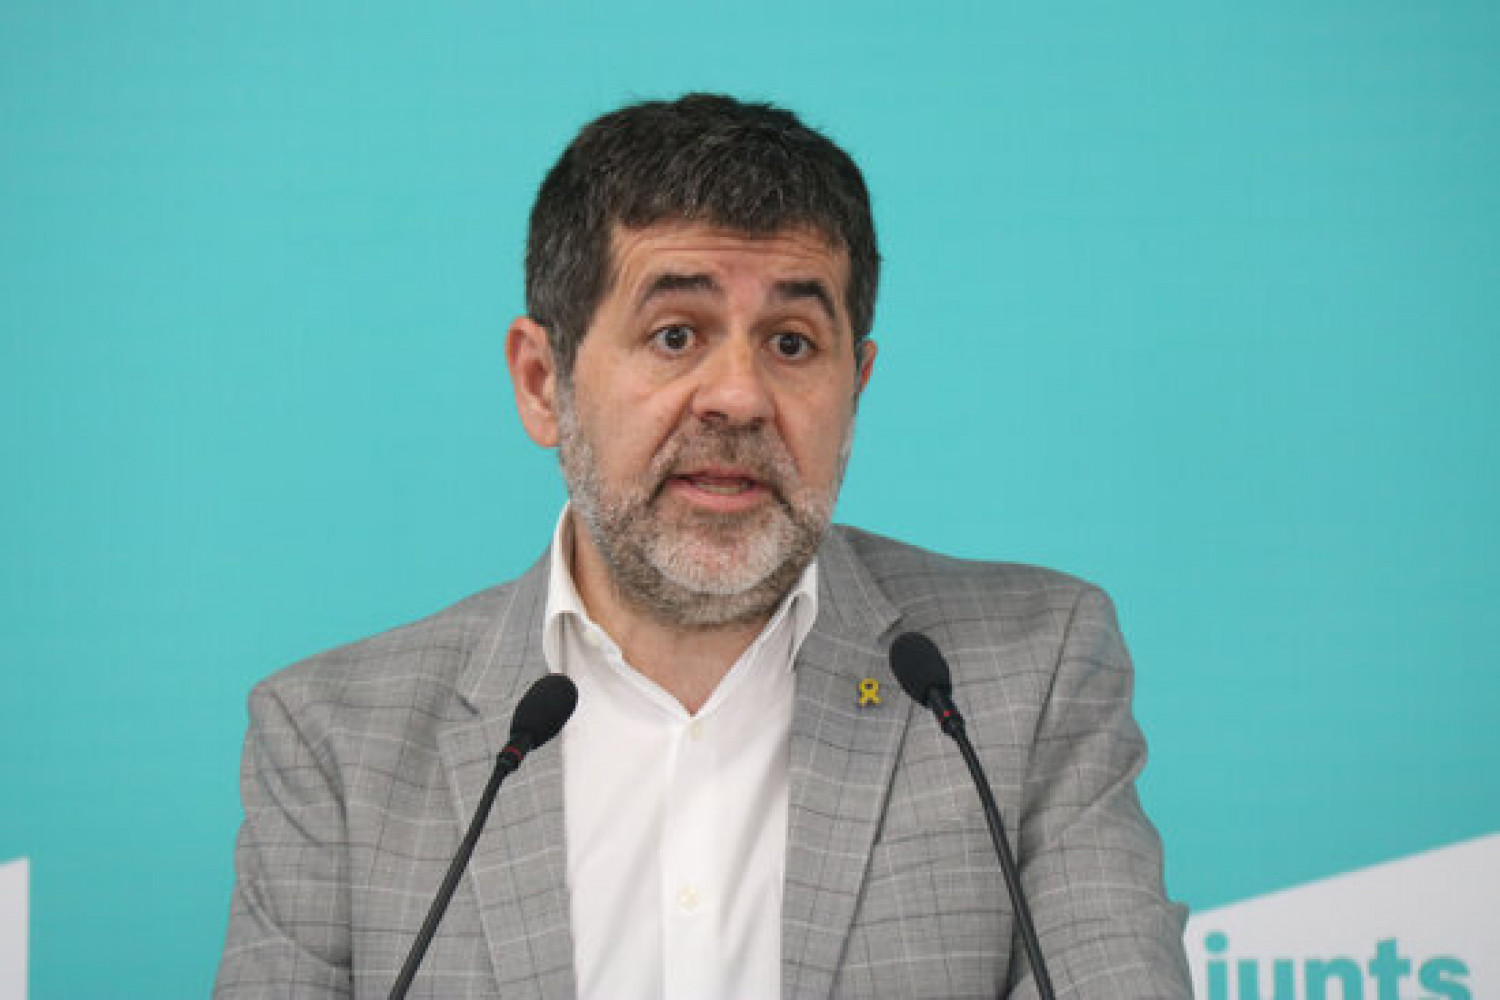 JxCat's Jordi Sànchez appears at a party press conference (by Mariona Puig)